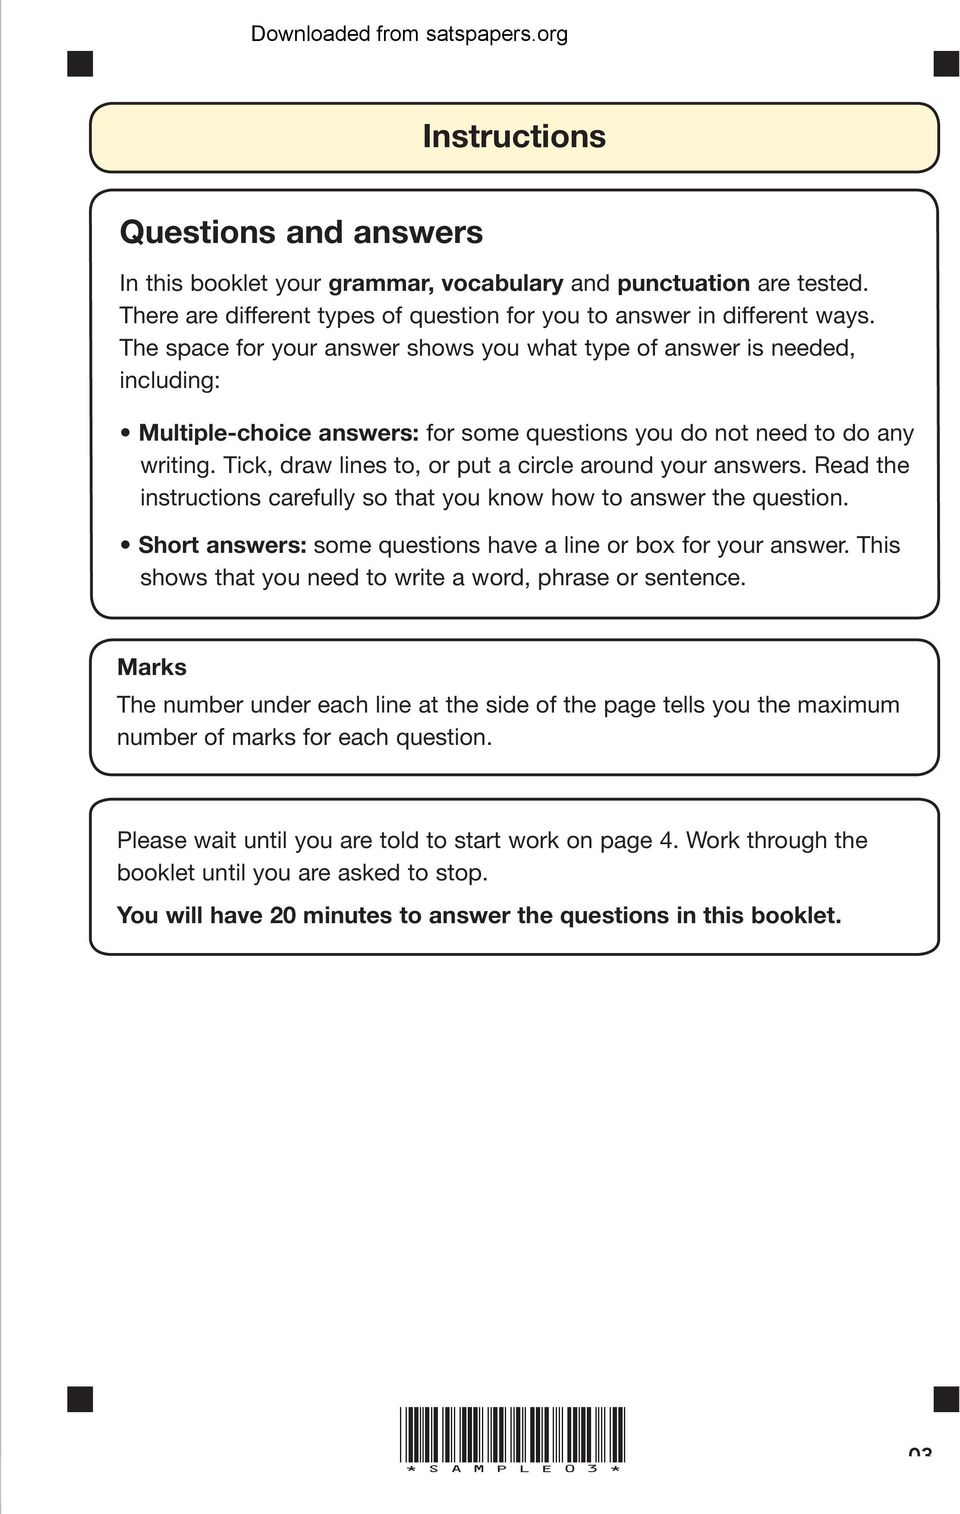 Tick, draw lines to, or put a circle around your answers. Read the instructions carefully so that you know how to answer the question. Short answers: some questions have a line or box for your answer.